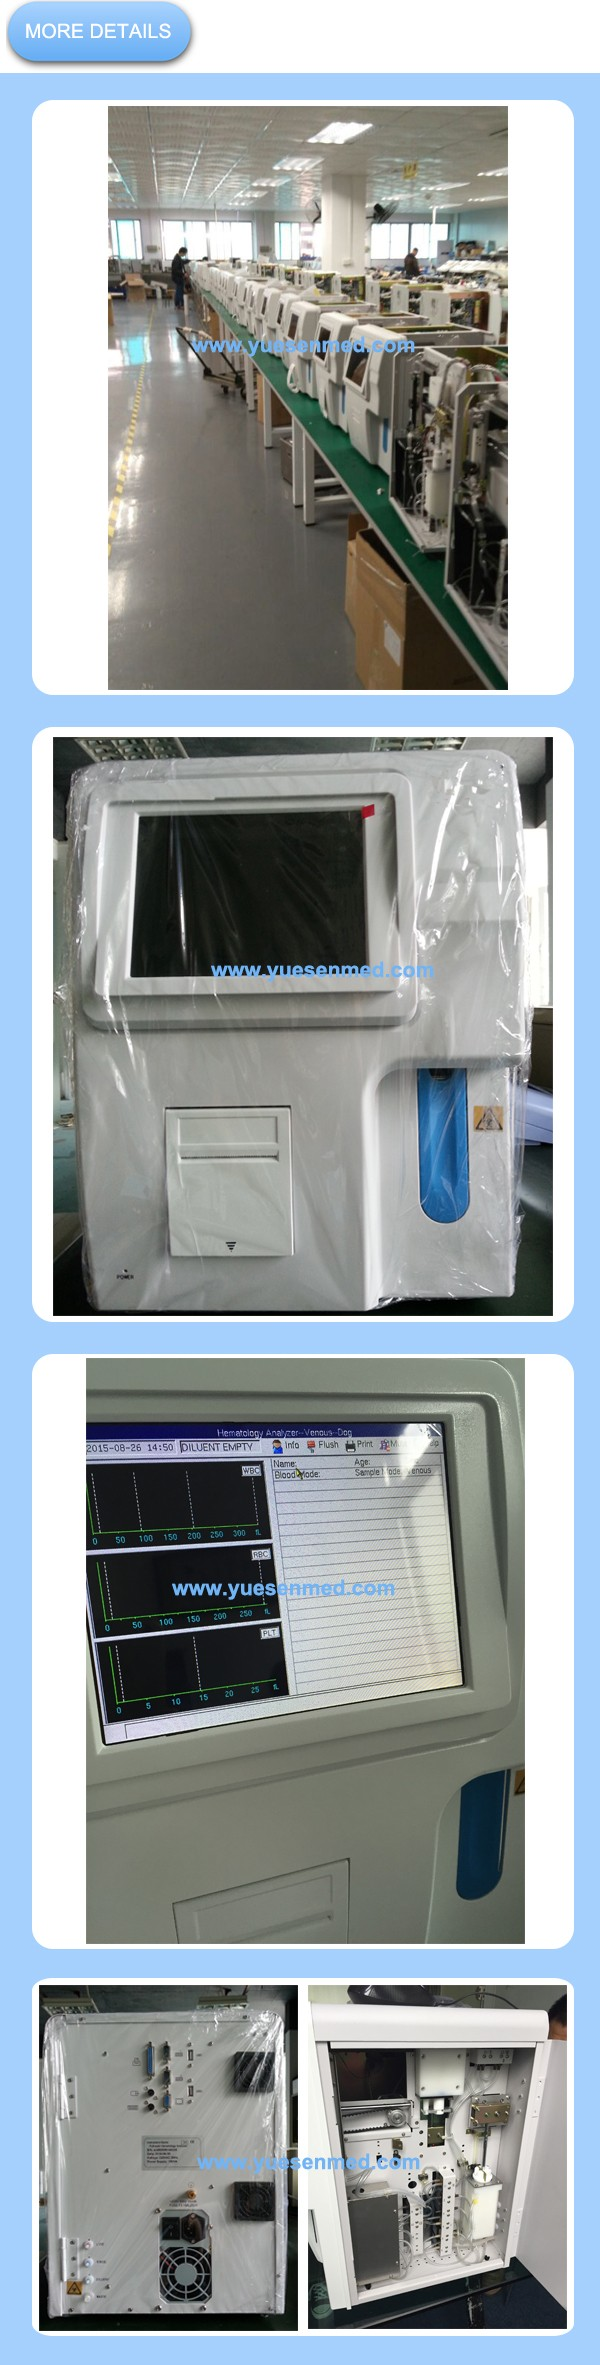 "Hot 8.4"" color TFT portable automatic blood hematology analyzer"